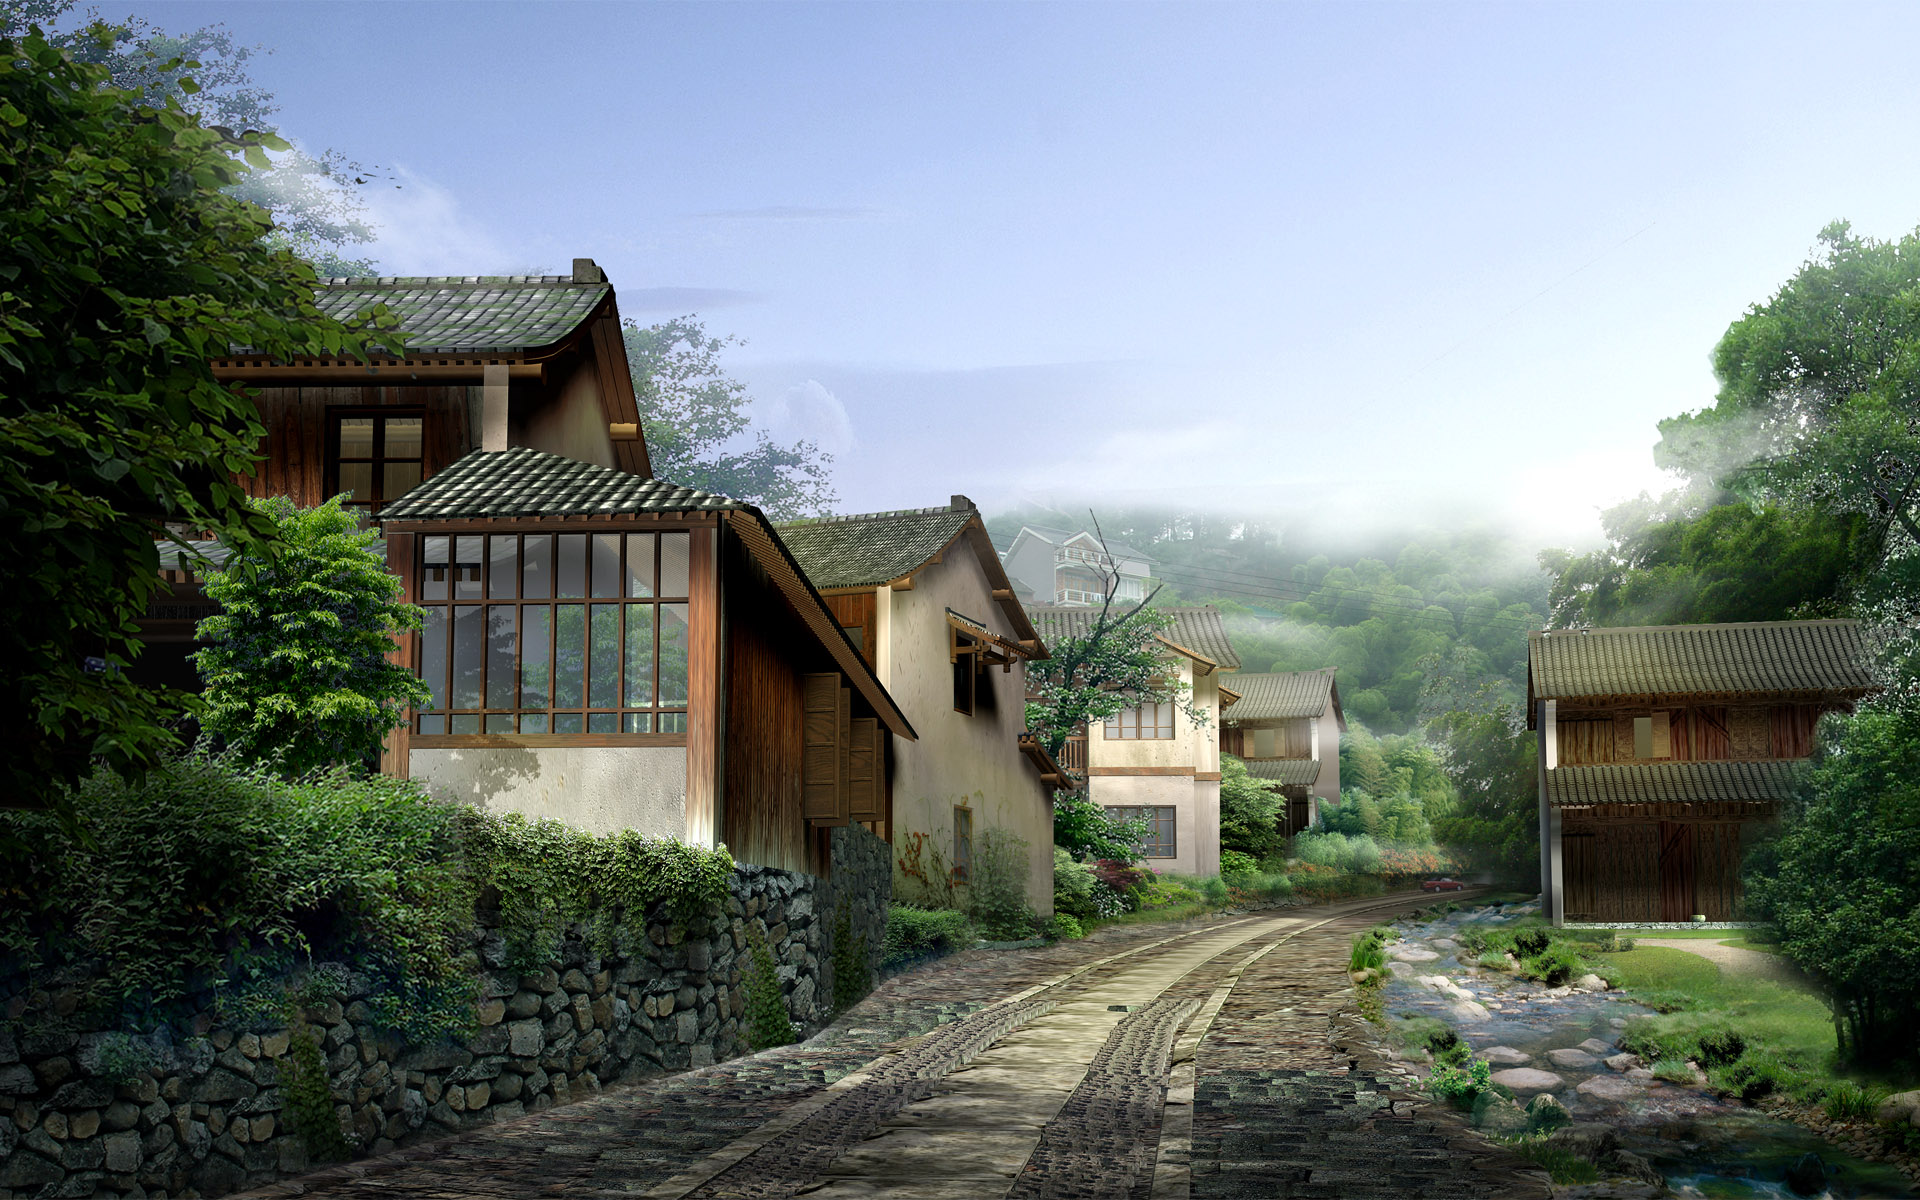 Home Photos Alluring Of Chinese Village Desktop Photos